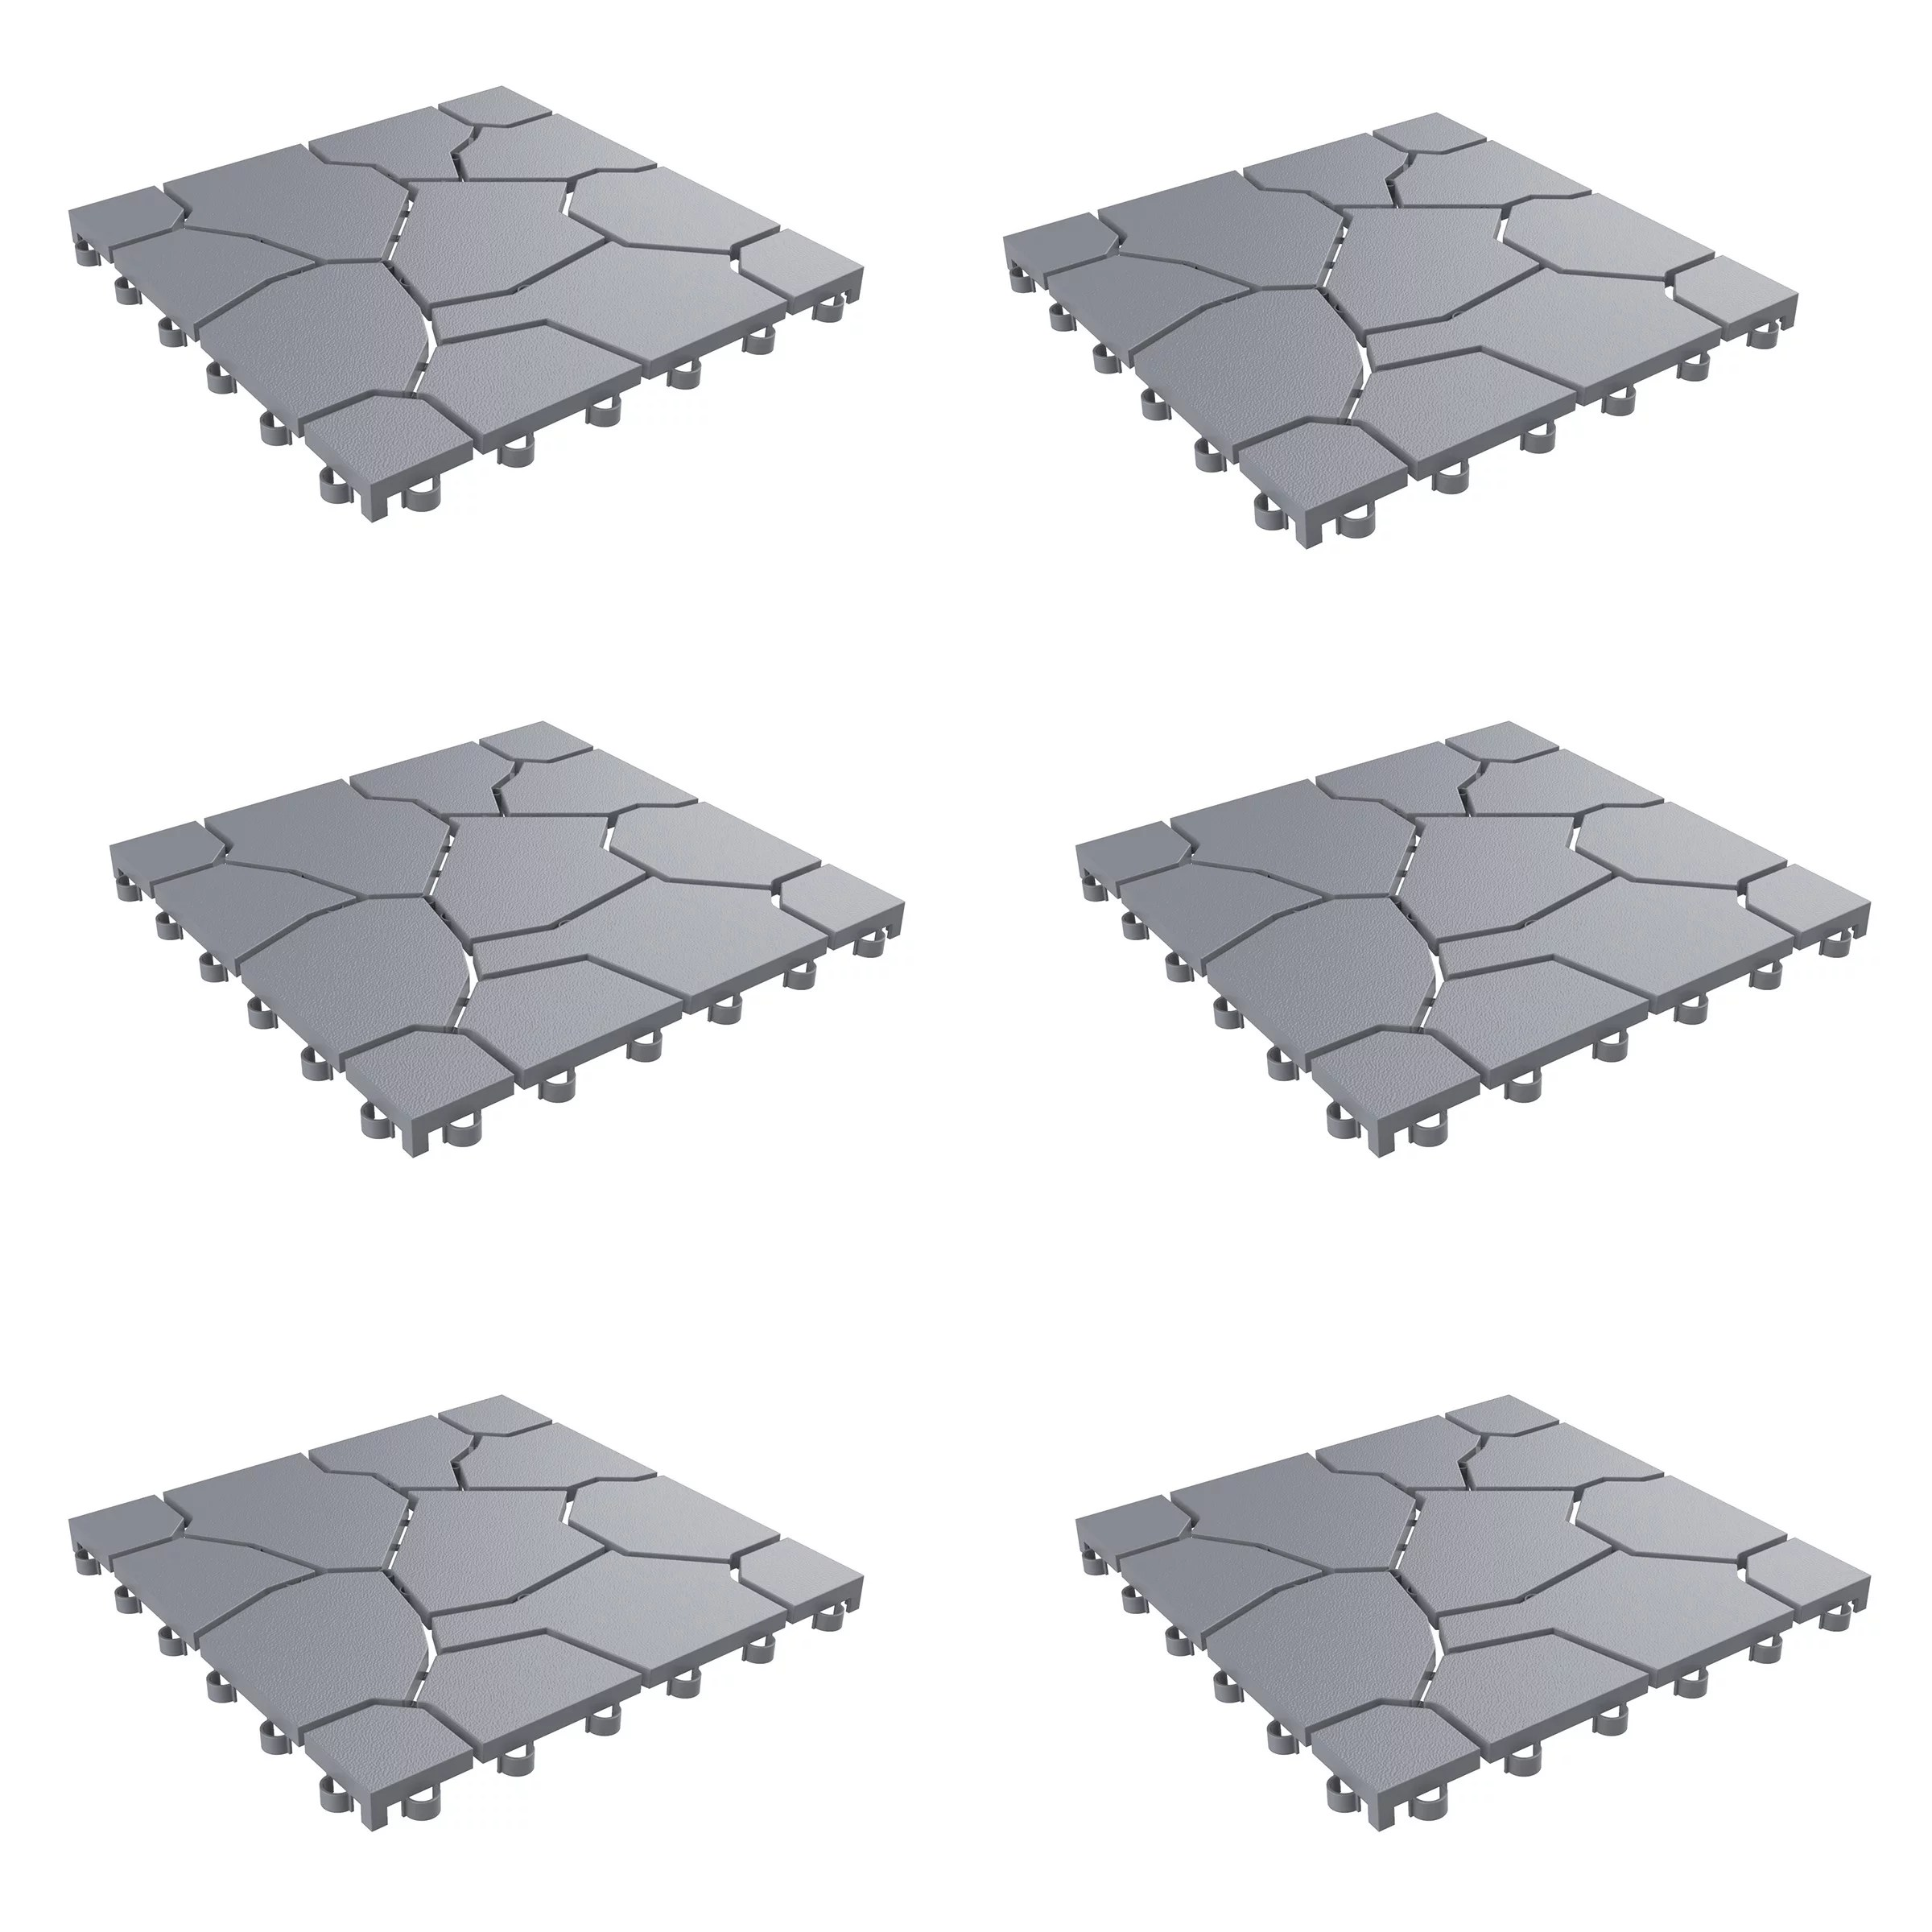 patio and deck tiles interlocking stone look outdoor flooring pavers weather resistant and anti slip square diy mat by pure garden grey set of 6